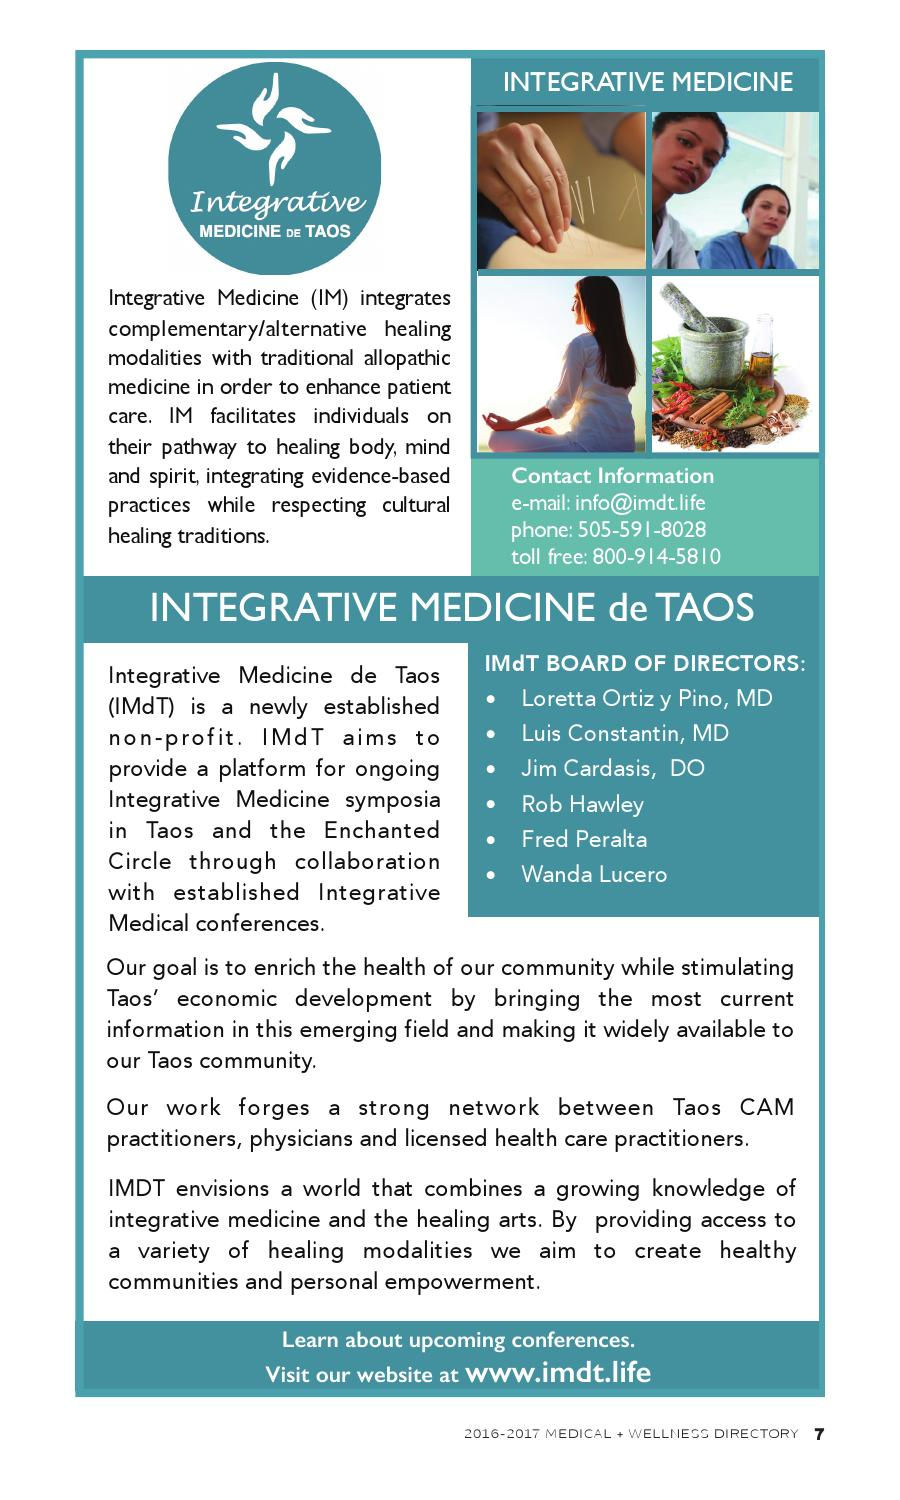 Medical and Wellness Directory 2016-2017 by The Taos News